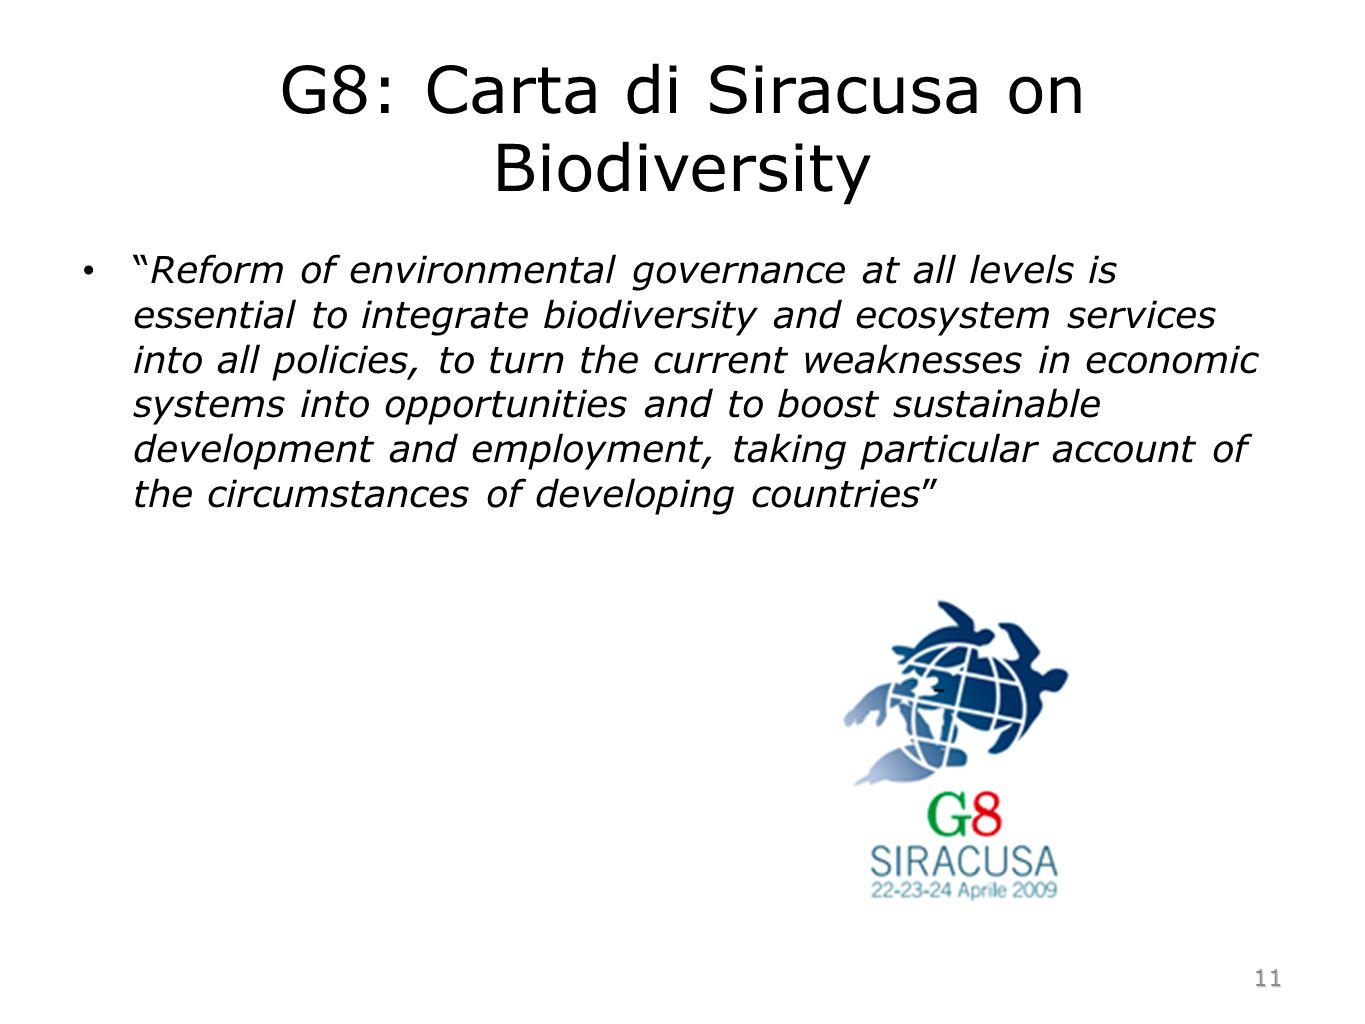 G8: Carta di Siracusa on Biodiversity Reform of environmental governance at all levels is essential to integrate biodiversity and ecosystem services into all policies, to turn the current weaknesses in economic systems into opportunities and to boost sustainable development and employment, taking particular account of the circumstances of developing countries 11